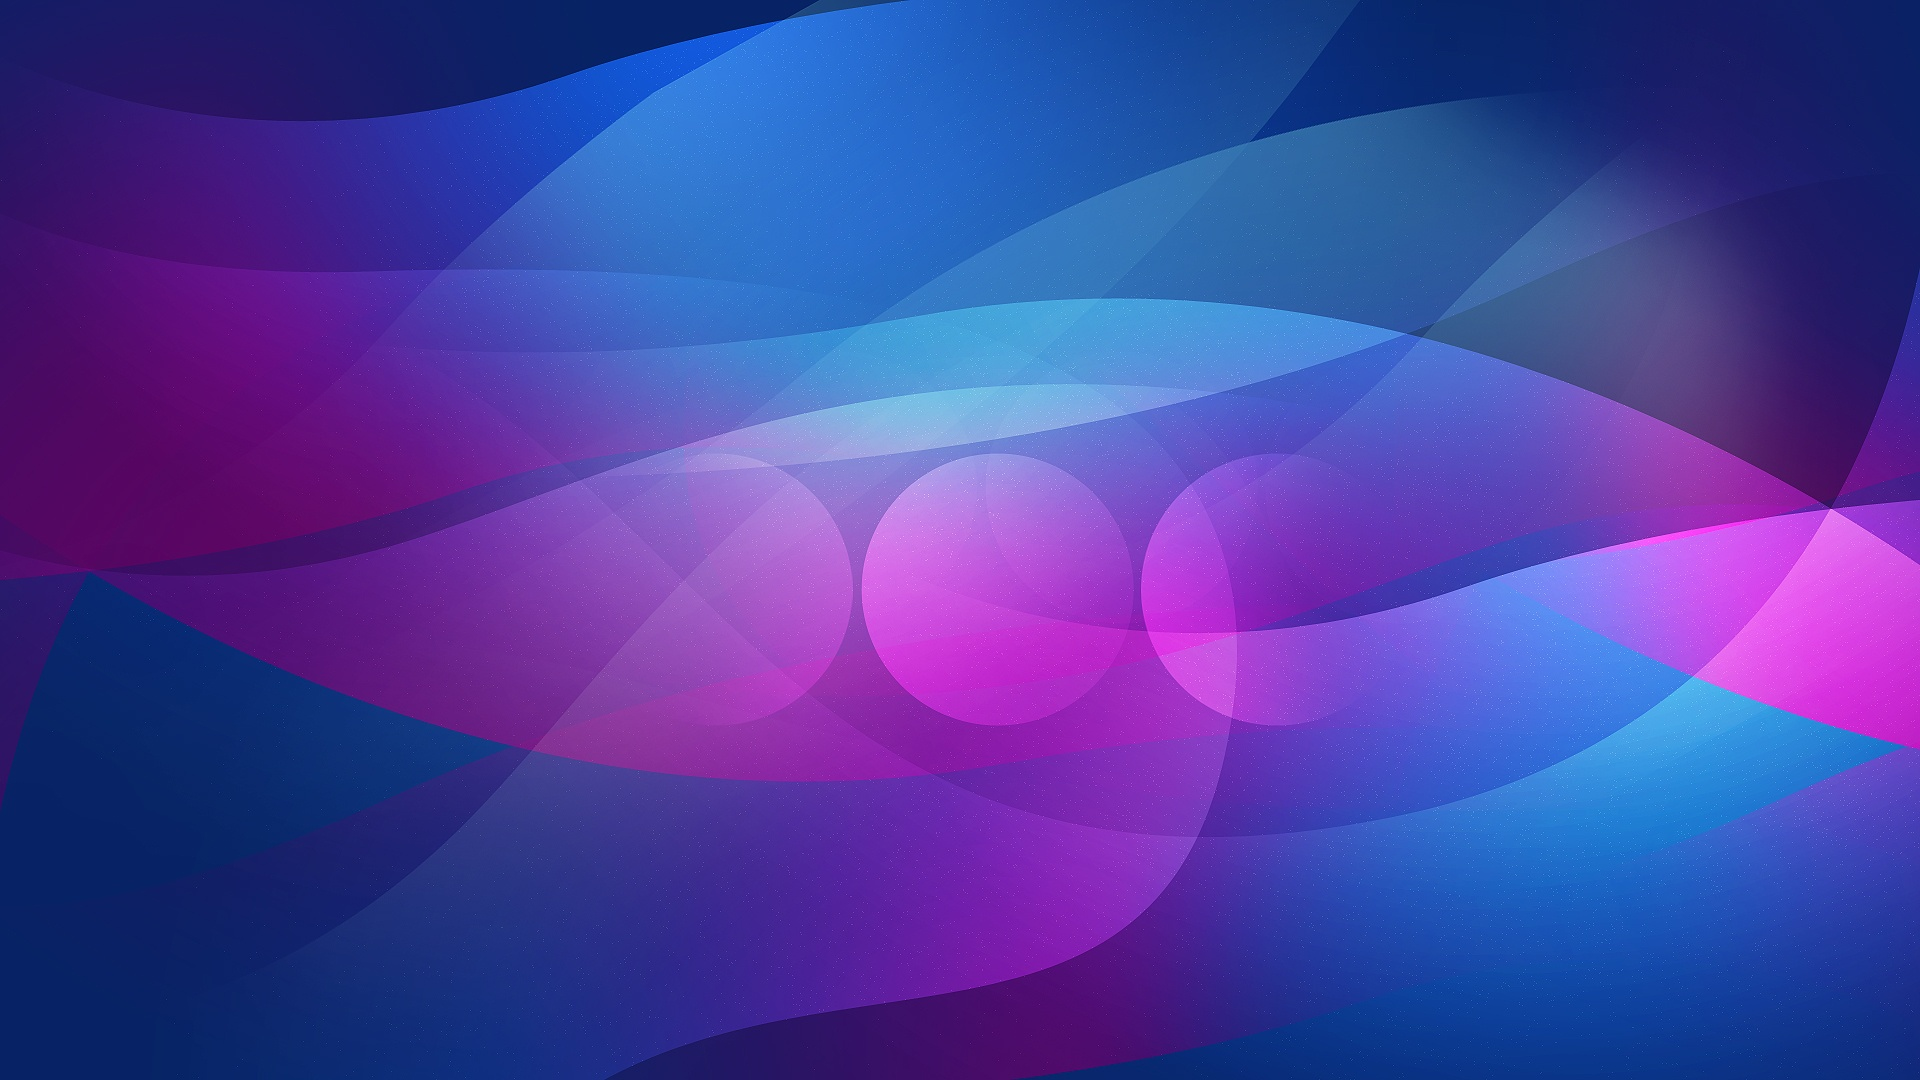 Background image 1080 - Abstract Backgrounds Purple